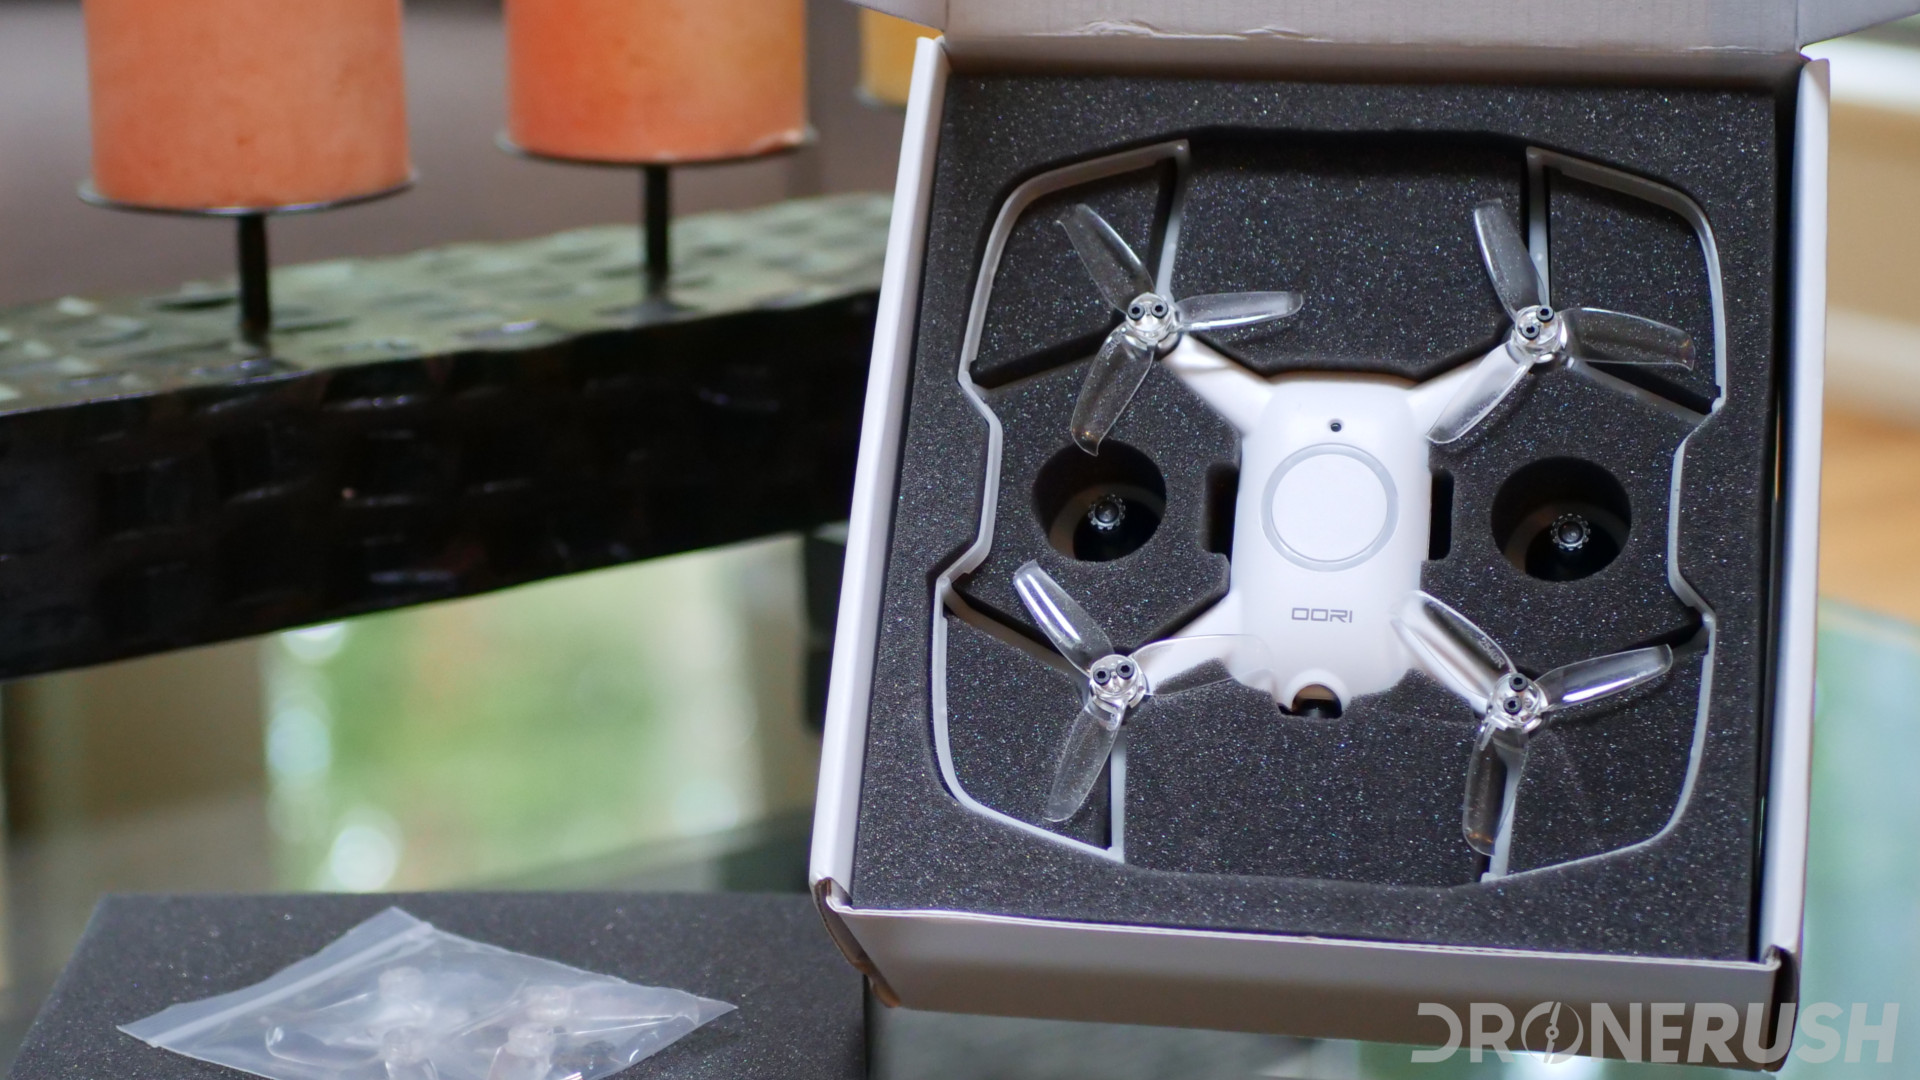 Uvify OOri unboxing drone in box